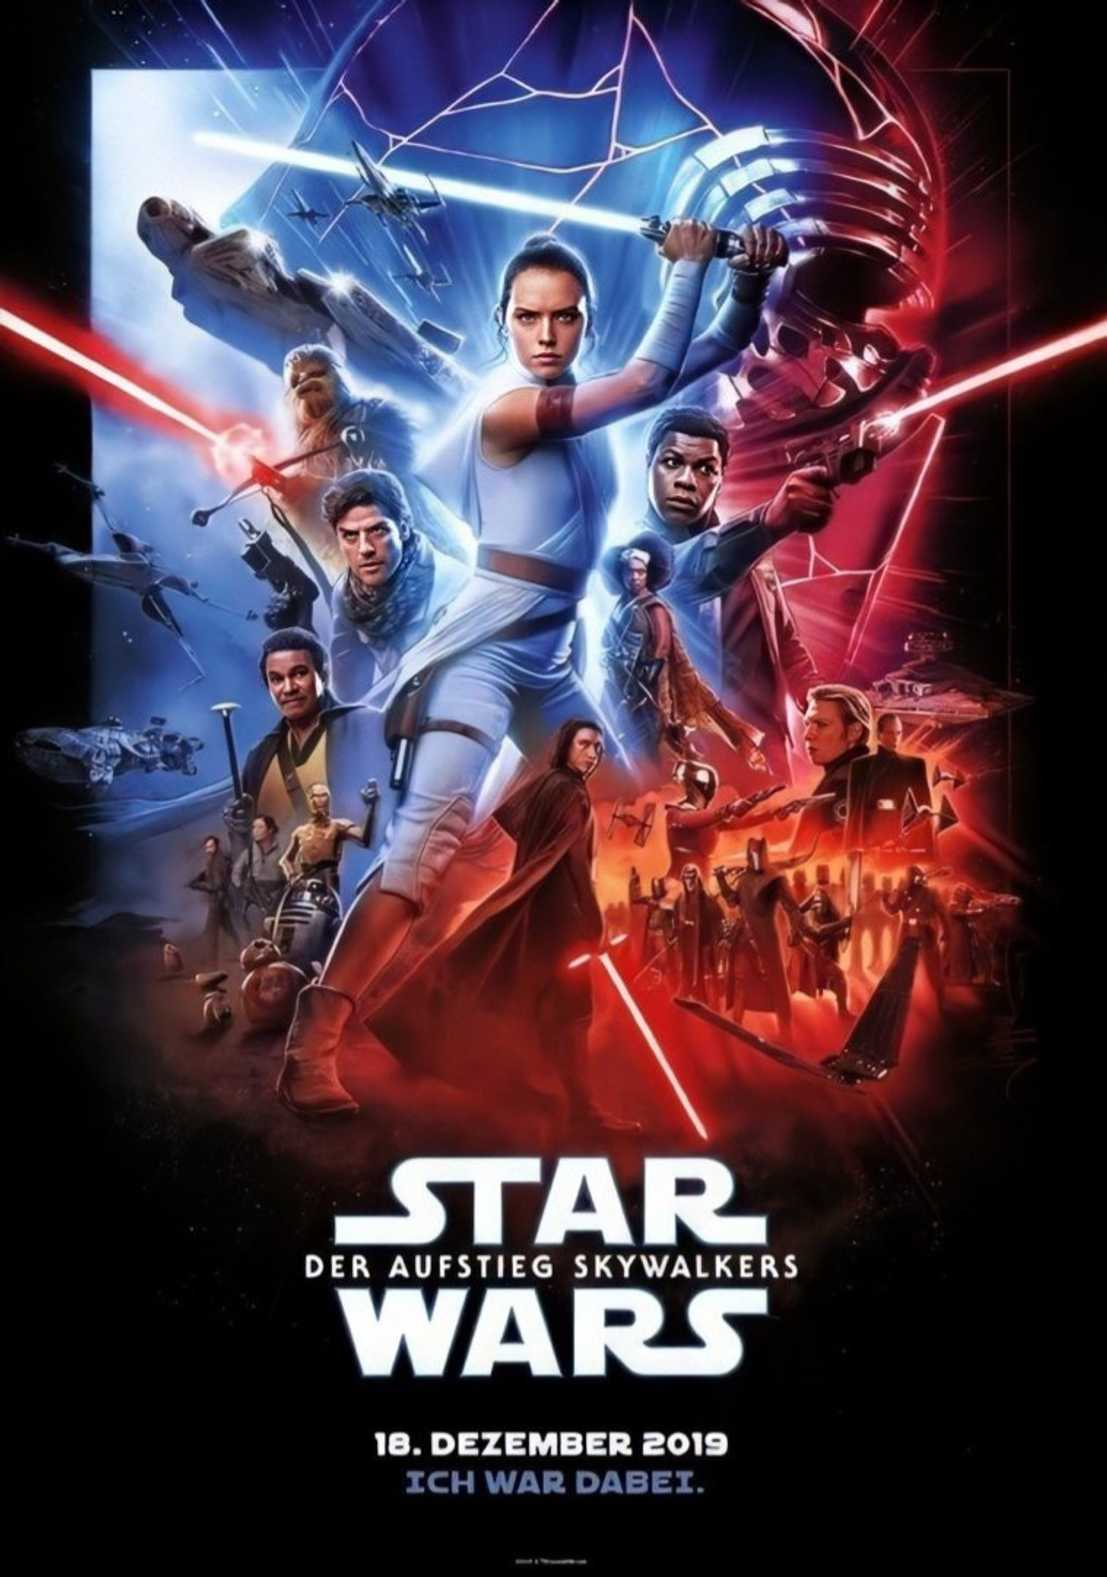 Star Wars The Rise Of Skywalker 2019 Full Movie Hd 1080p Free Download